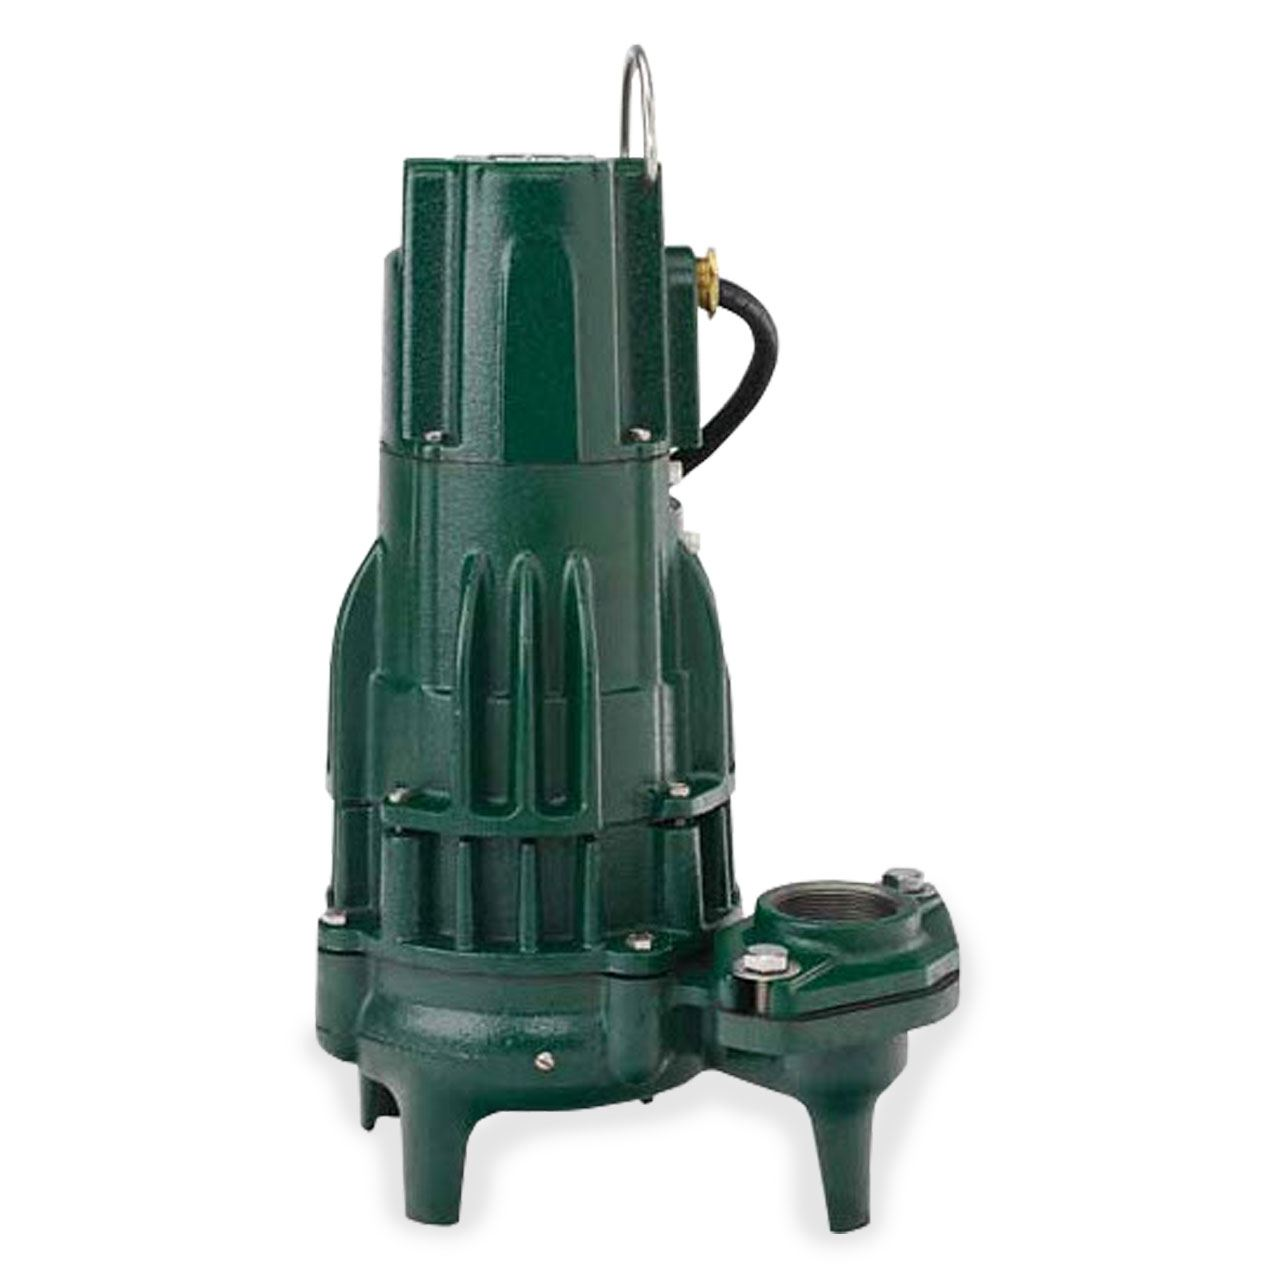 Zoeller Submersible Pump Wiring Diagram Schematics Liberty 295 0004 Model E295 High Head Sewage Dewatering Sewer System